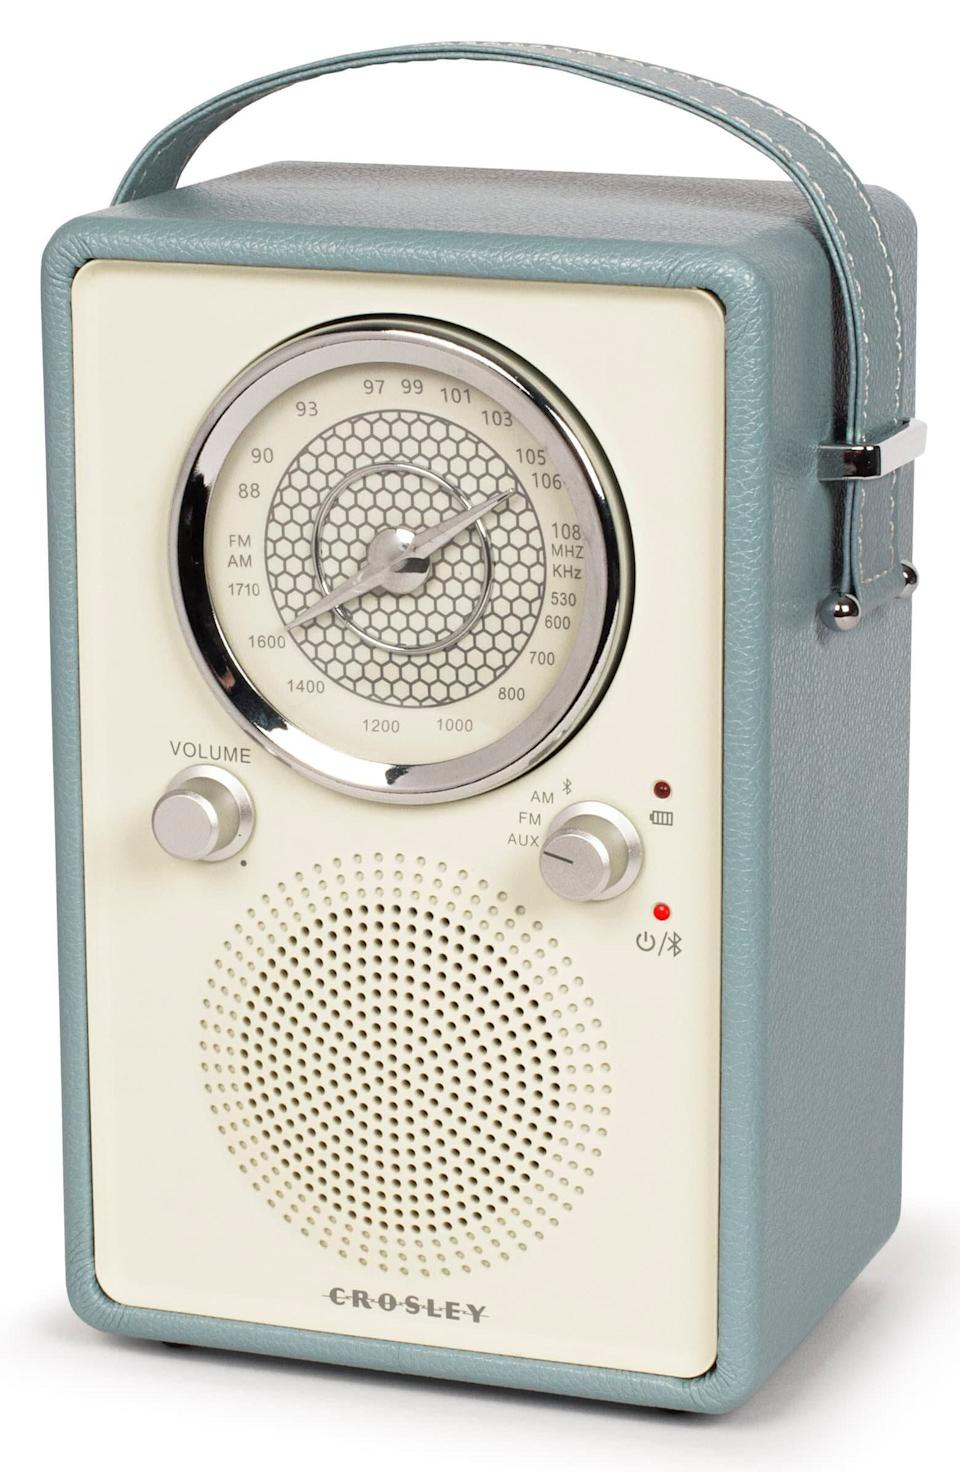 """If you're obsessed with your Crosley record player, this handheld AM/FM radio is for you. <a href=""""https://yhoo.it/3eMQvPP"""" rel=""""nofollow noopener"""" target=""""_blank"""" data-ylk=""""slk:Find it for $70 at Nordstrom"""" class=""""link rapid-noclick-resp"""">Find it for $70 at Nordstrom</a>."""